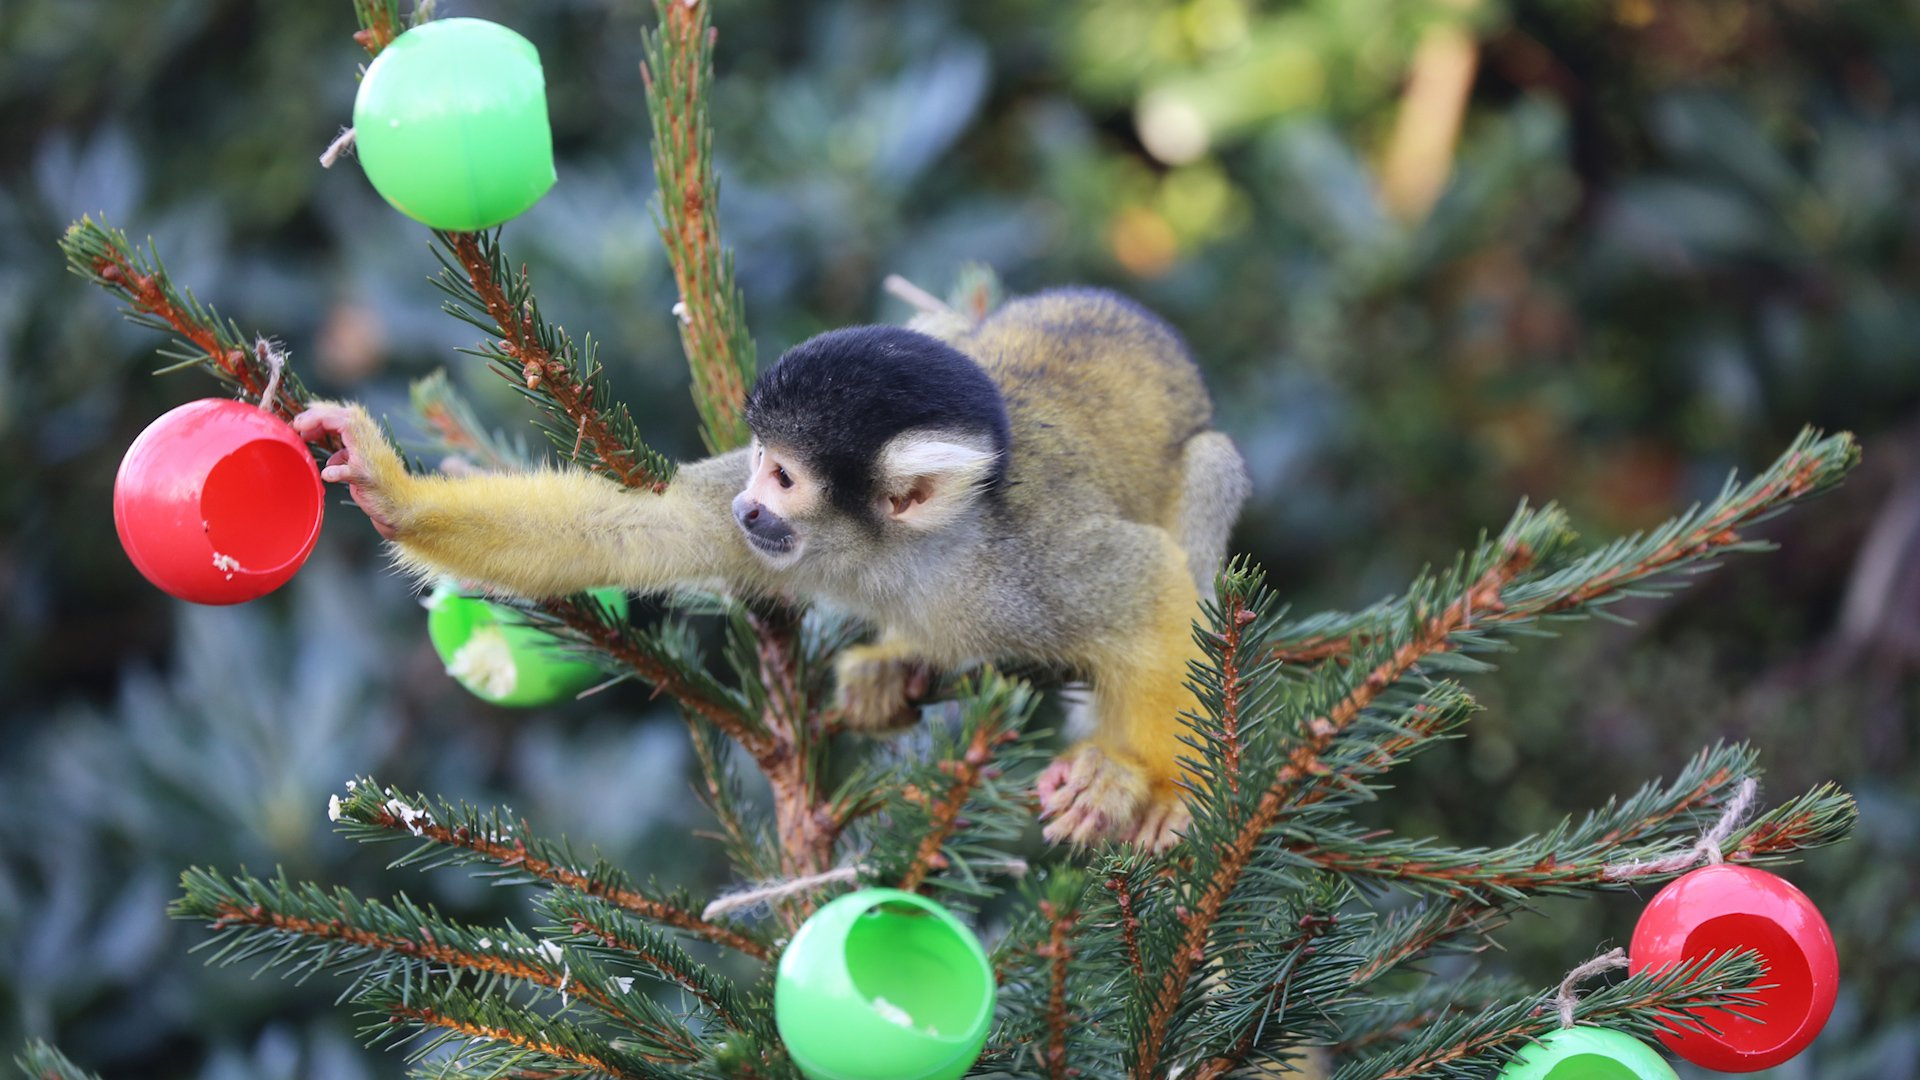 HQ Squirrel Monkey Wallpapers | File 286.57Kb